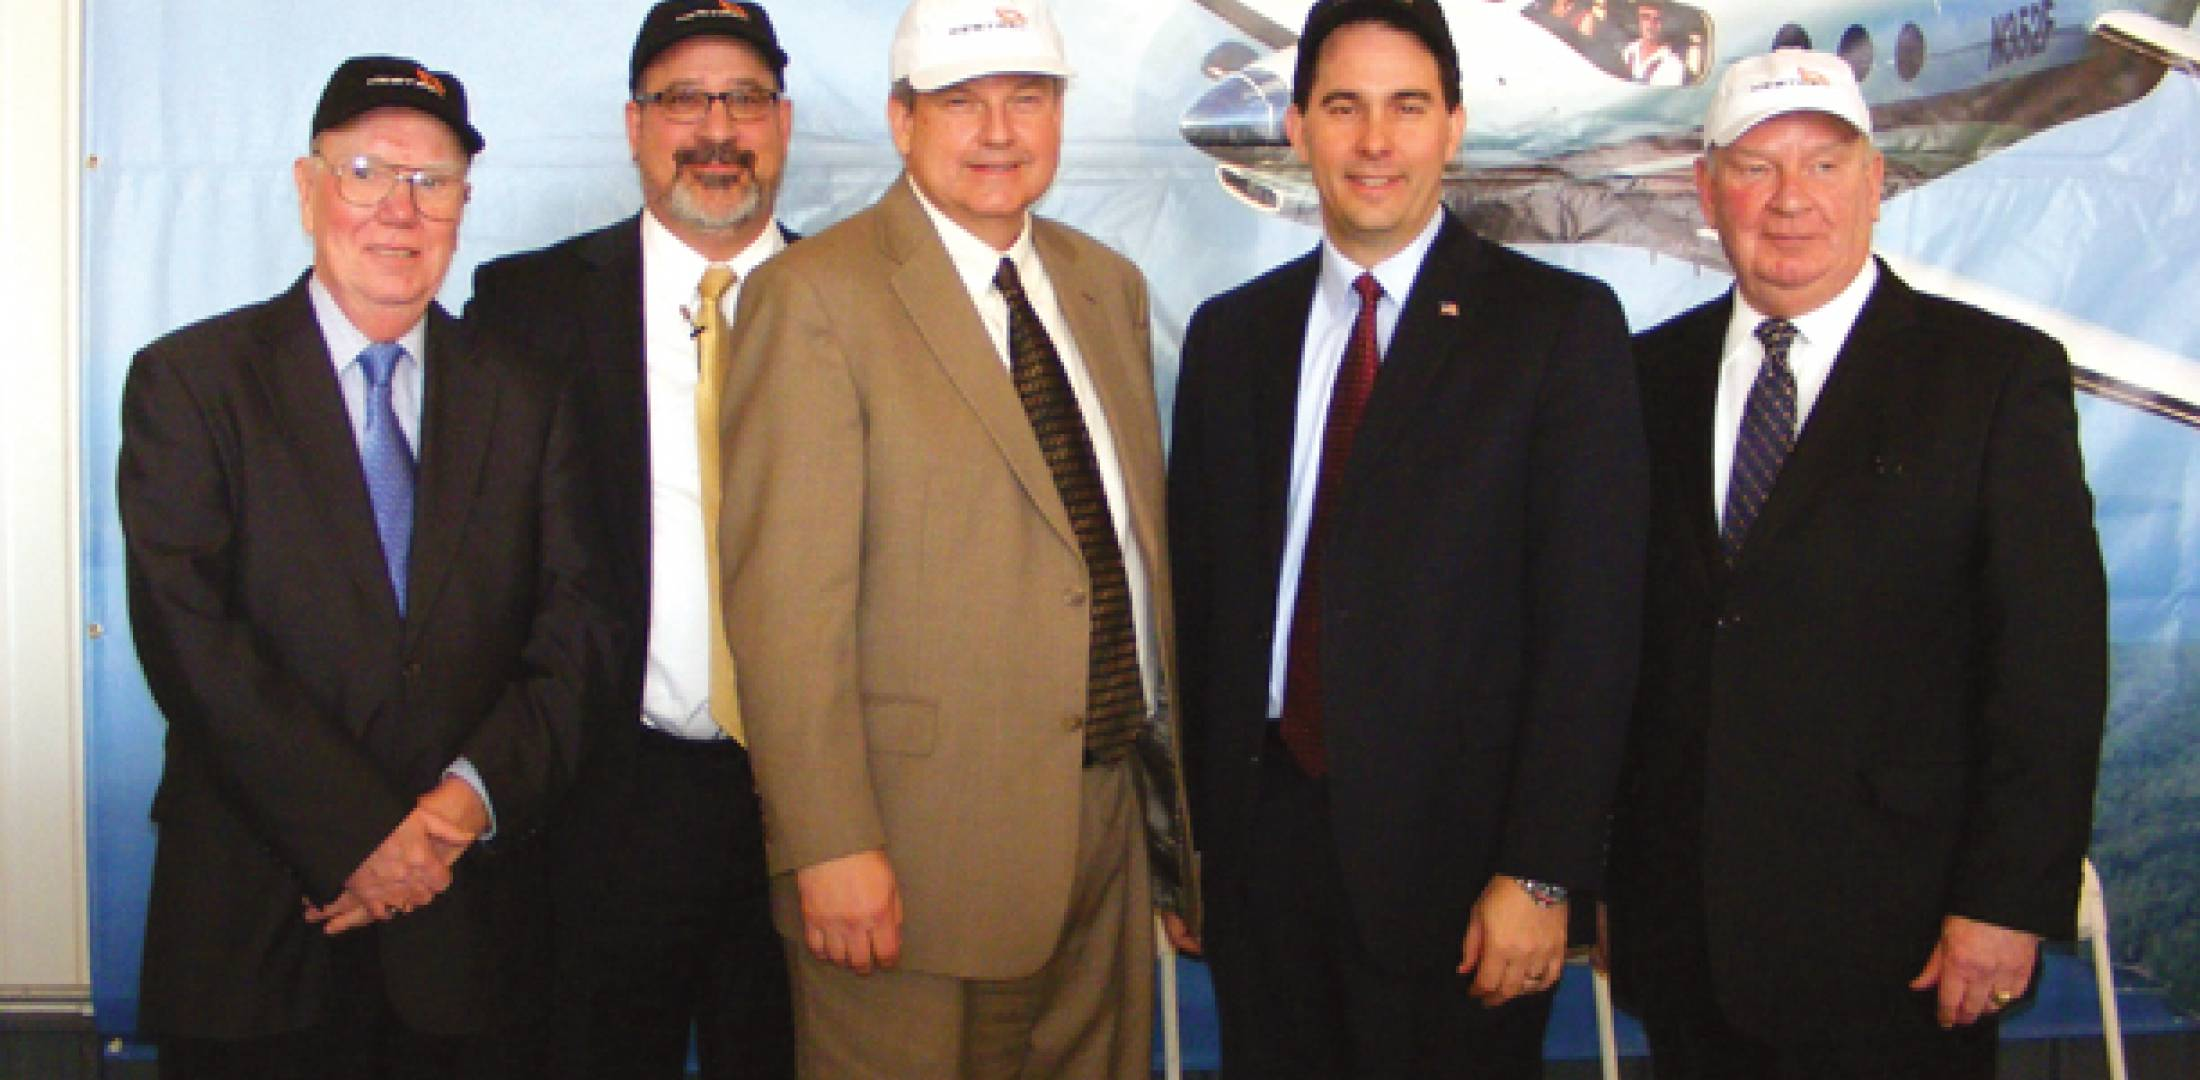 (L to r) Doug Finn, Douglas County Board; Dave Minor, Superior Chamber of Commer